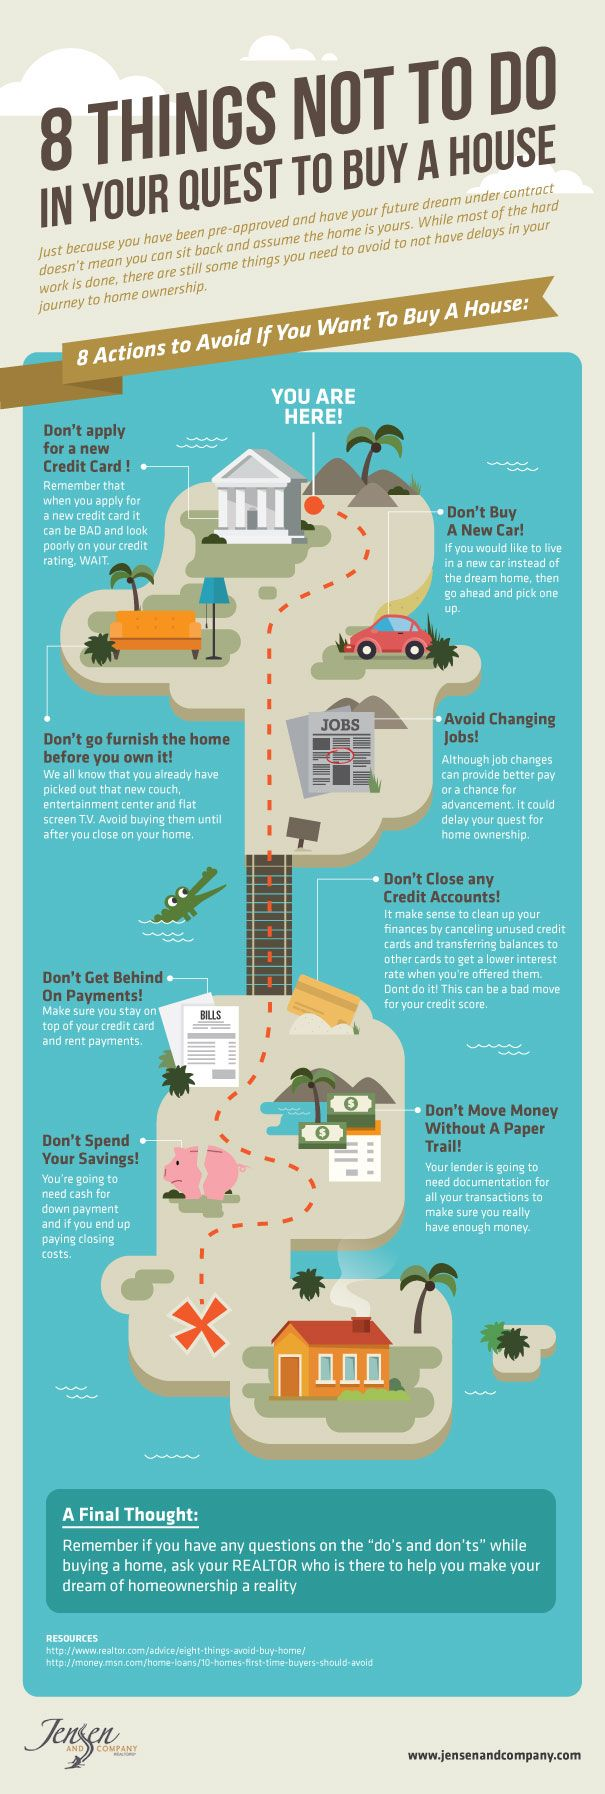 Tips to Avoid the 8 Top Mistakes When Buying a House - Tipsographic